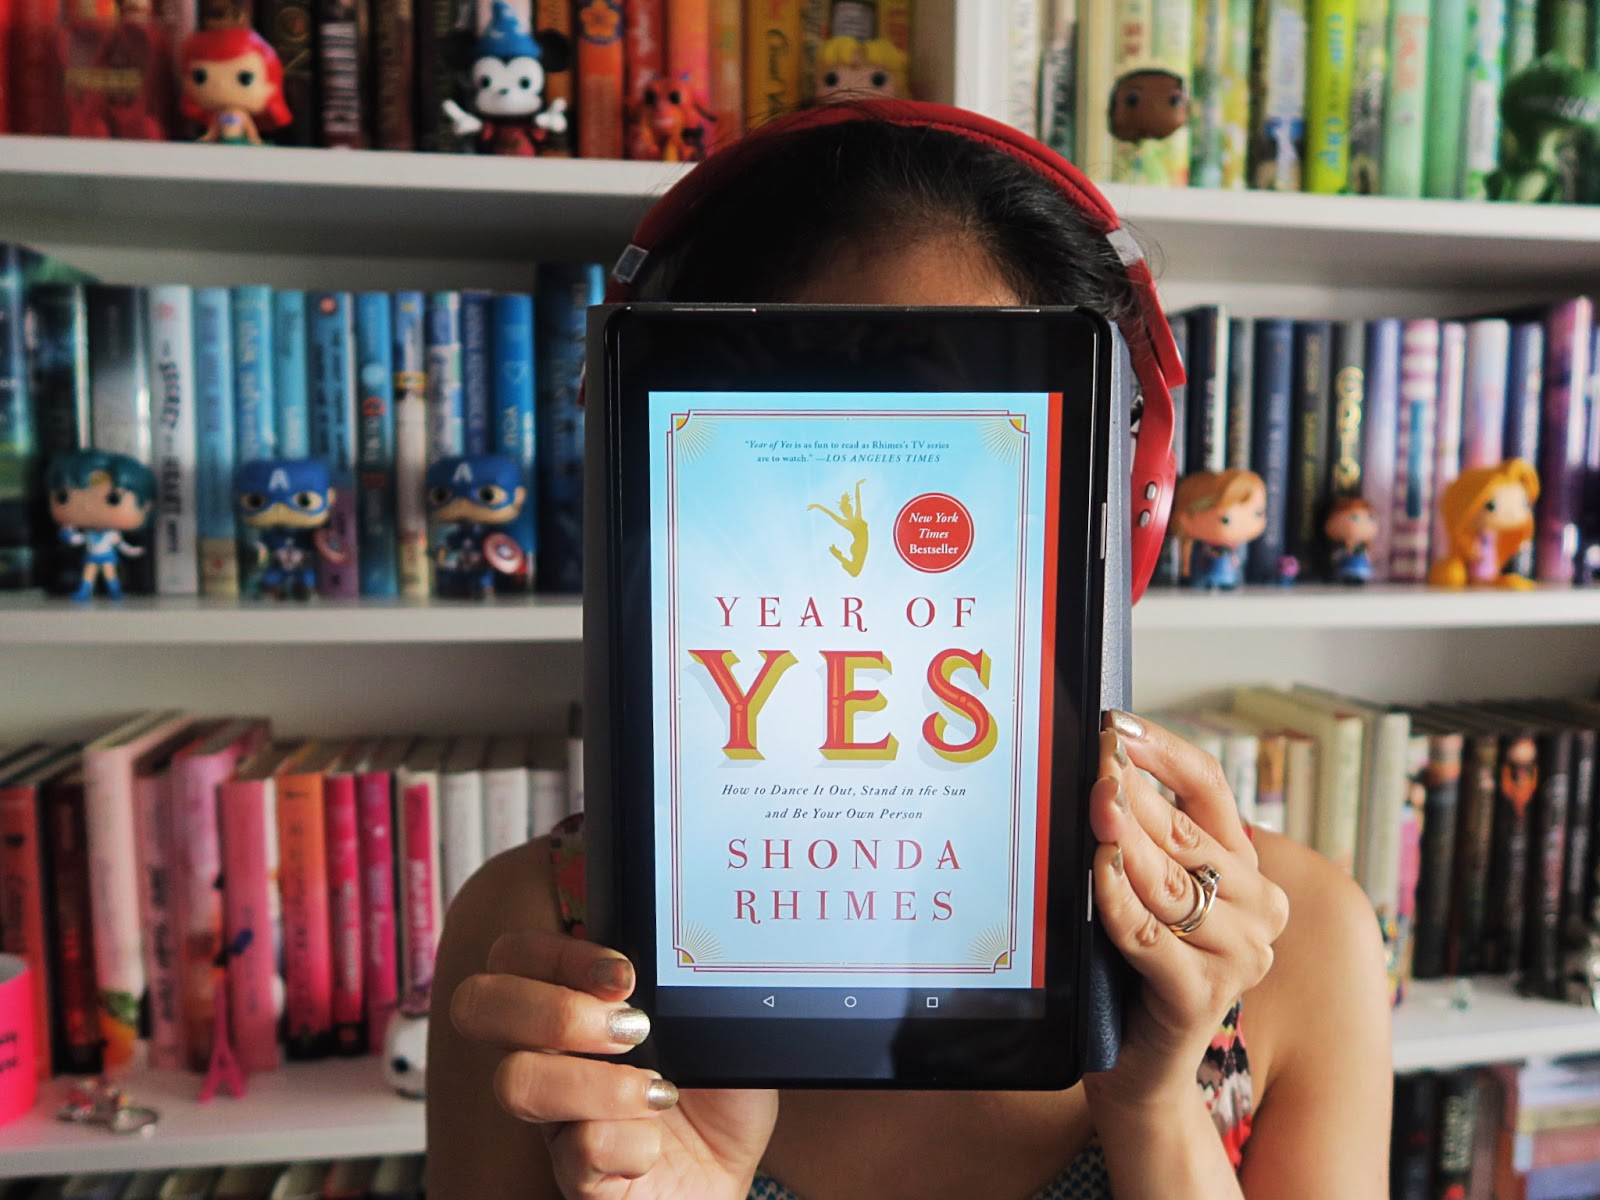 Year of Yes: How to Dance It Out, Stand In the Sun and Be Your Own Person